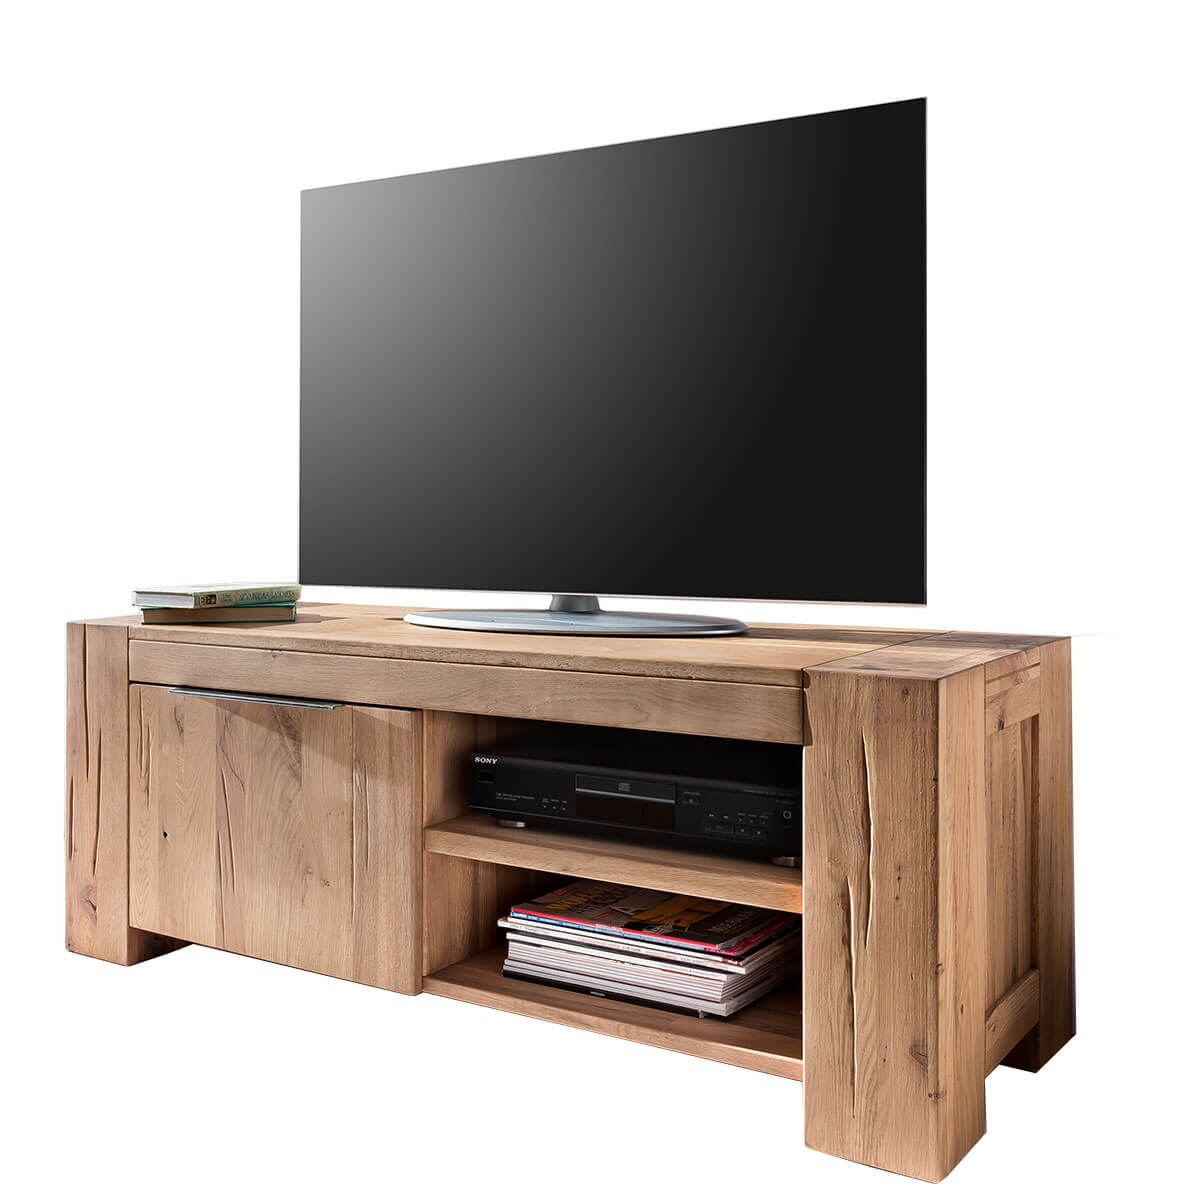 tv lowboard in eiche natural 130 cm m bel24. Black Bedroom Furniture Sets. Home Design Ideas